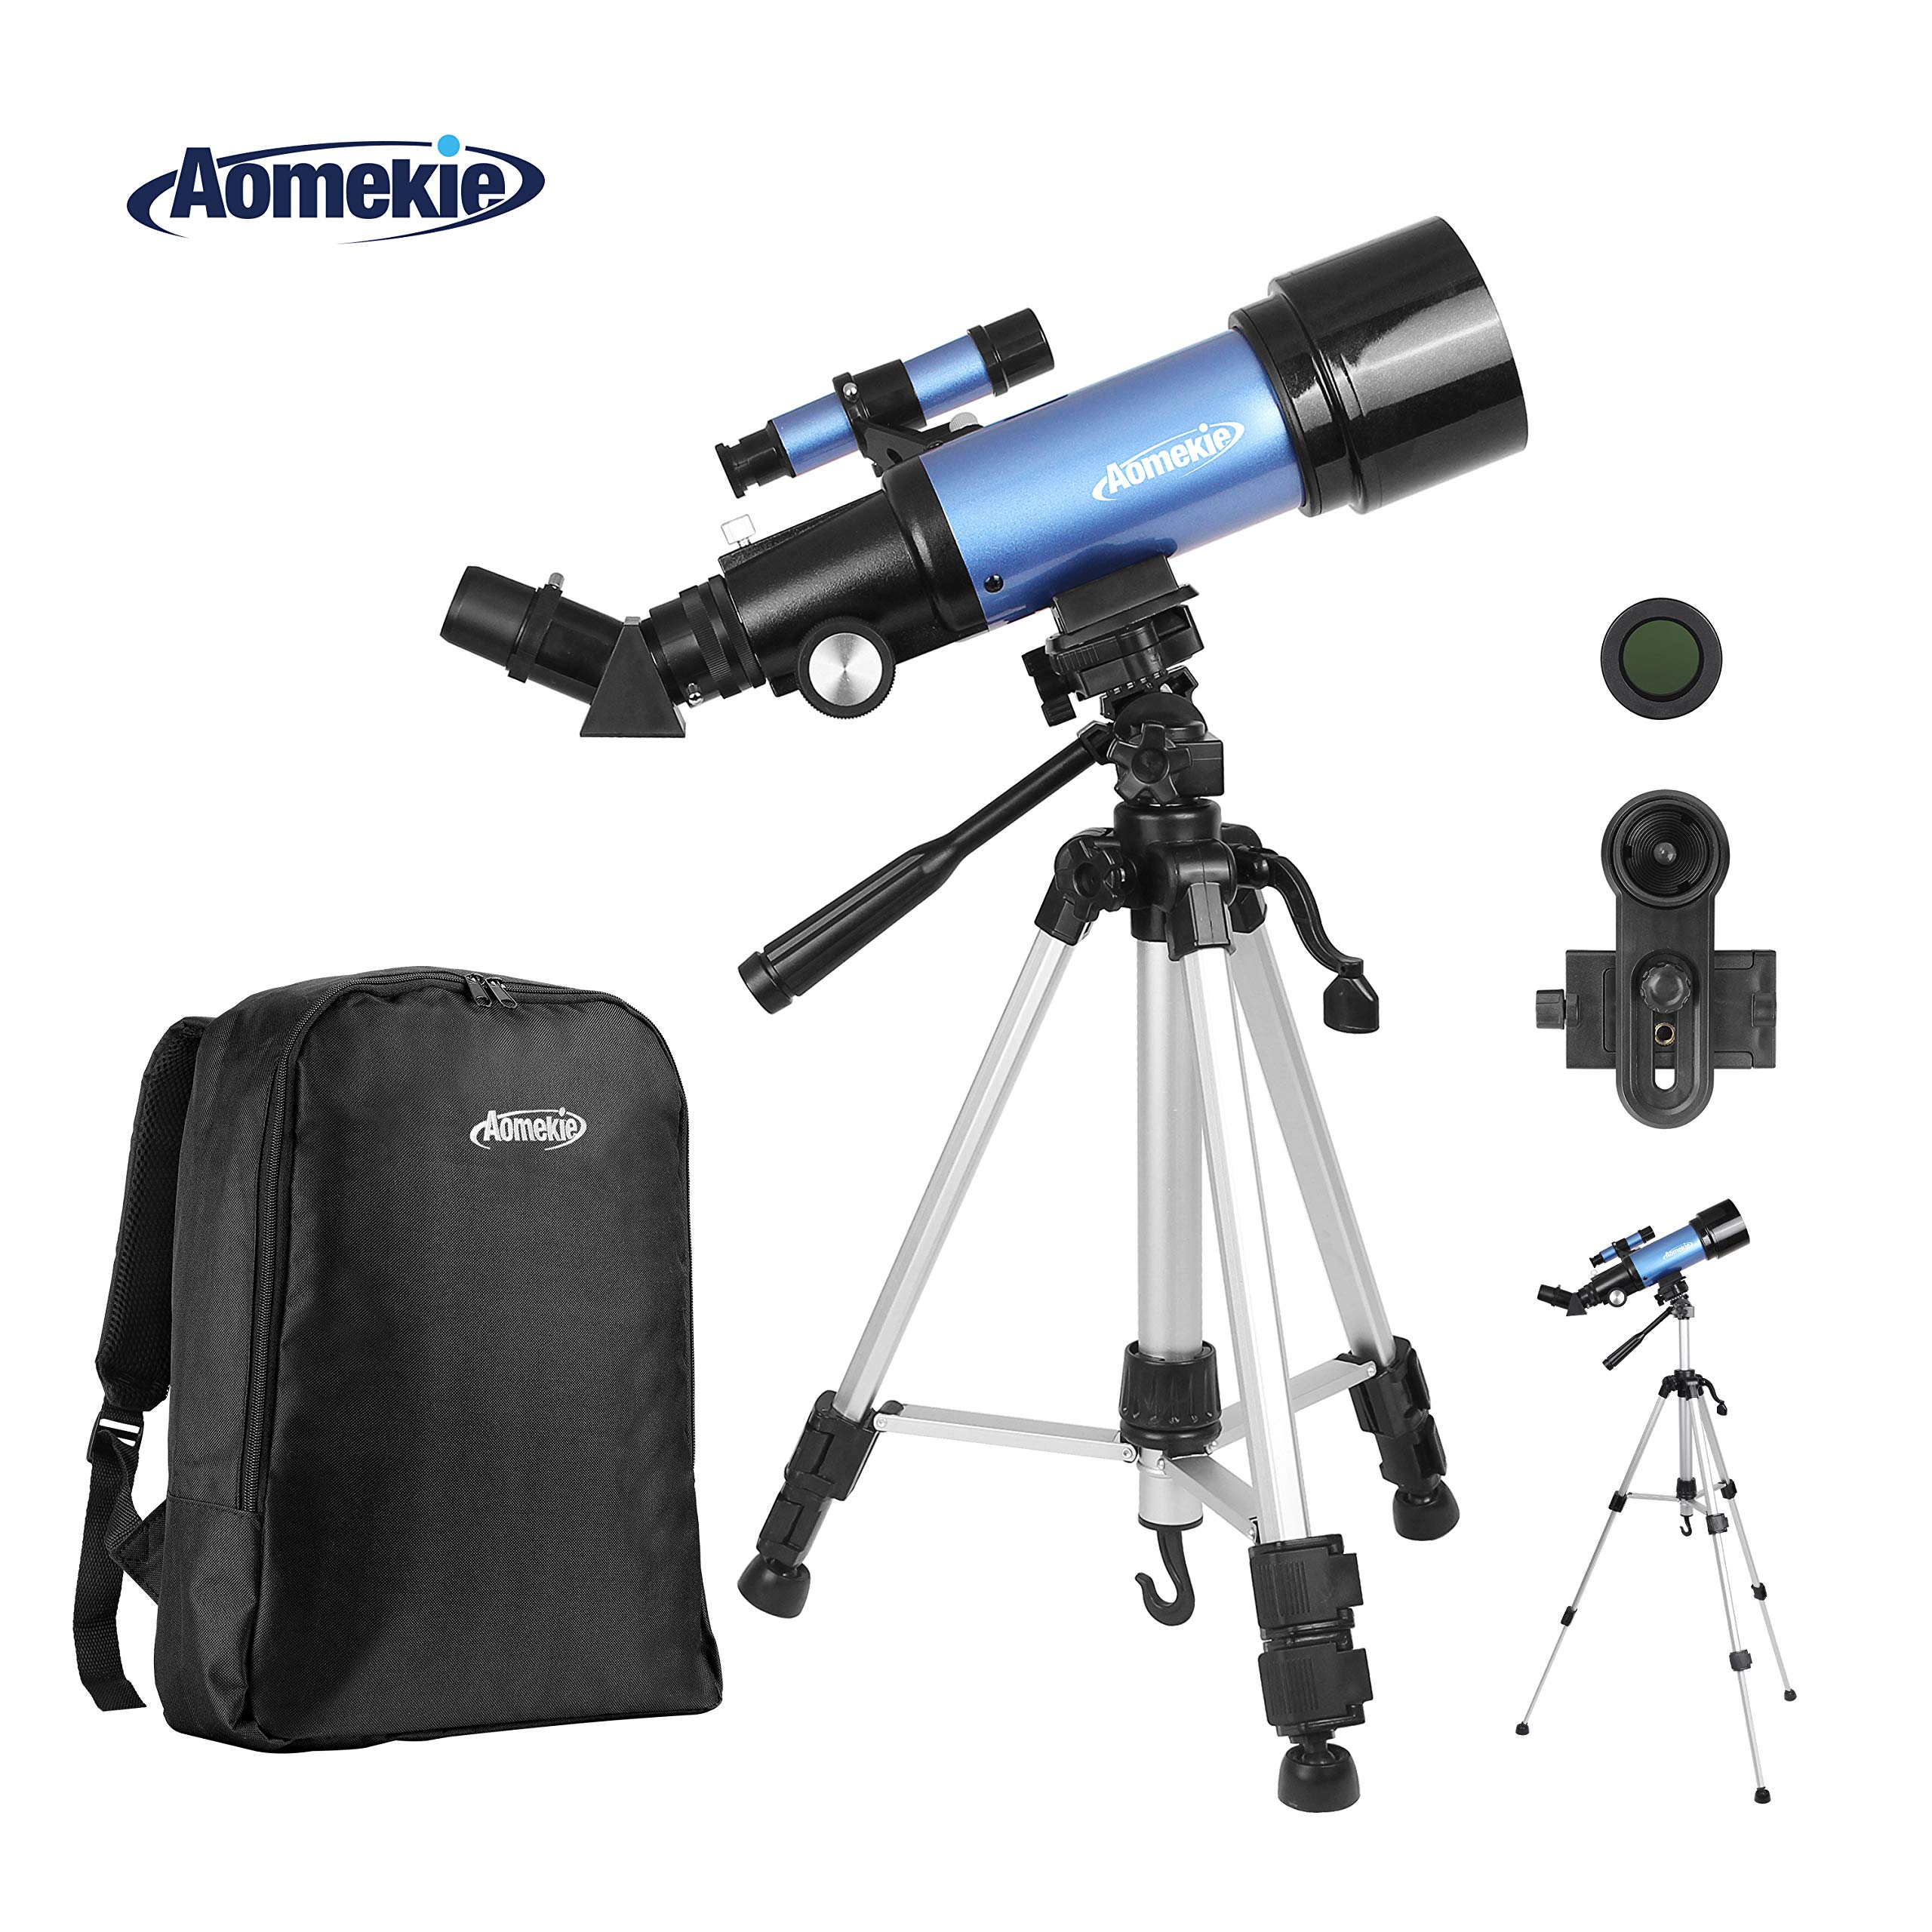 Aomekie Telescope for Adults Astronomy Beginners Kids Telescopes 70mm with 51Inch Adjustable Tripod 10X Eyepiece Phone Adapter 3X Barlow Lens and Backpack by AOMEKIE